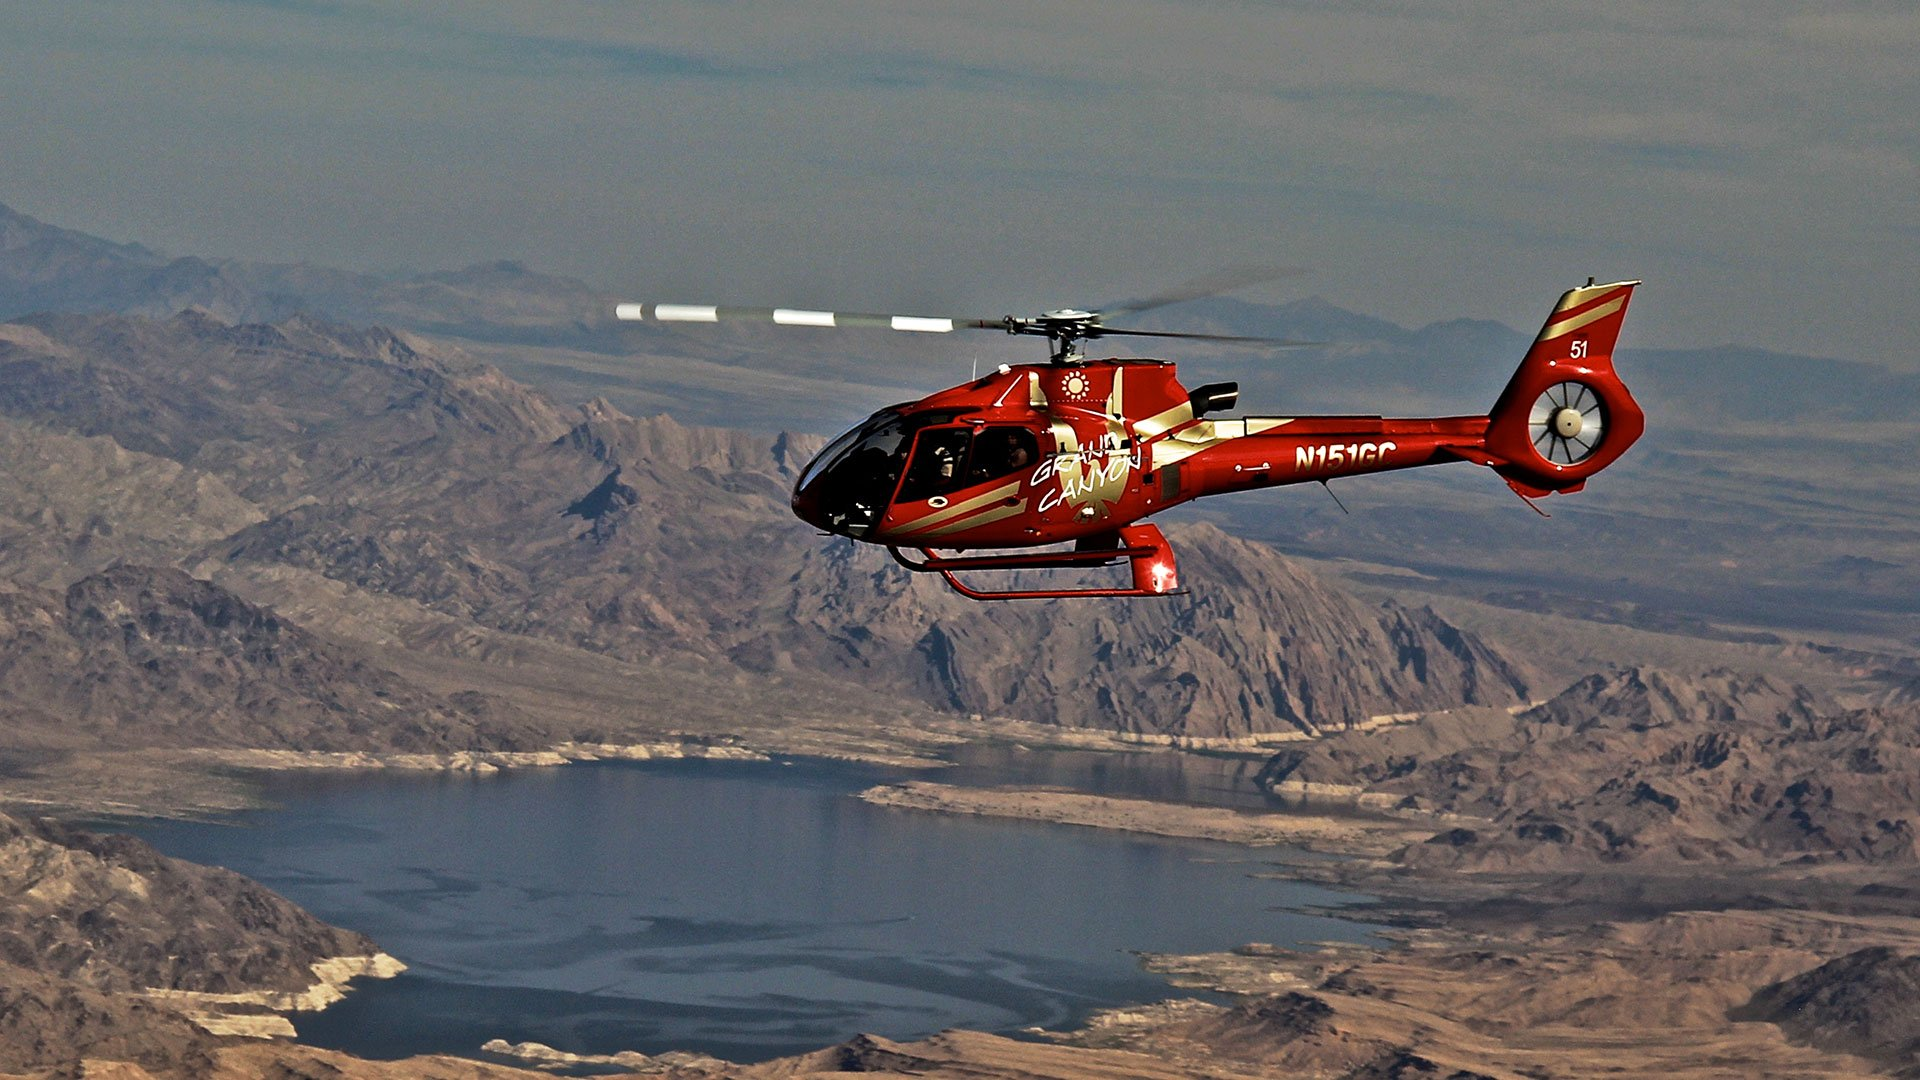 A helicopter flying over Lake Mead en route to the Grand Canyon West.